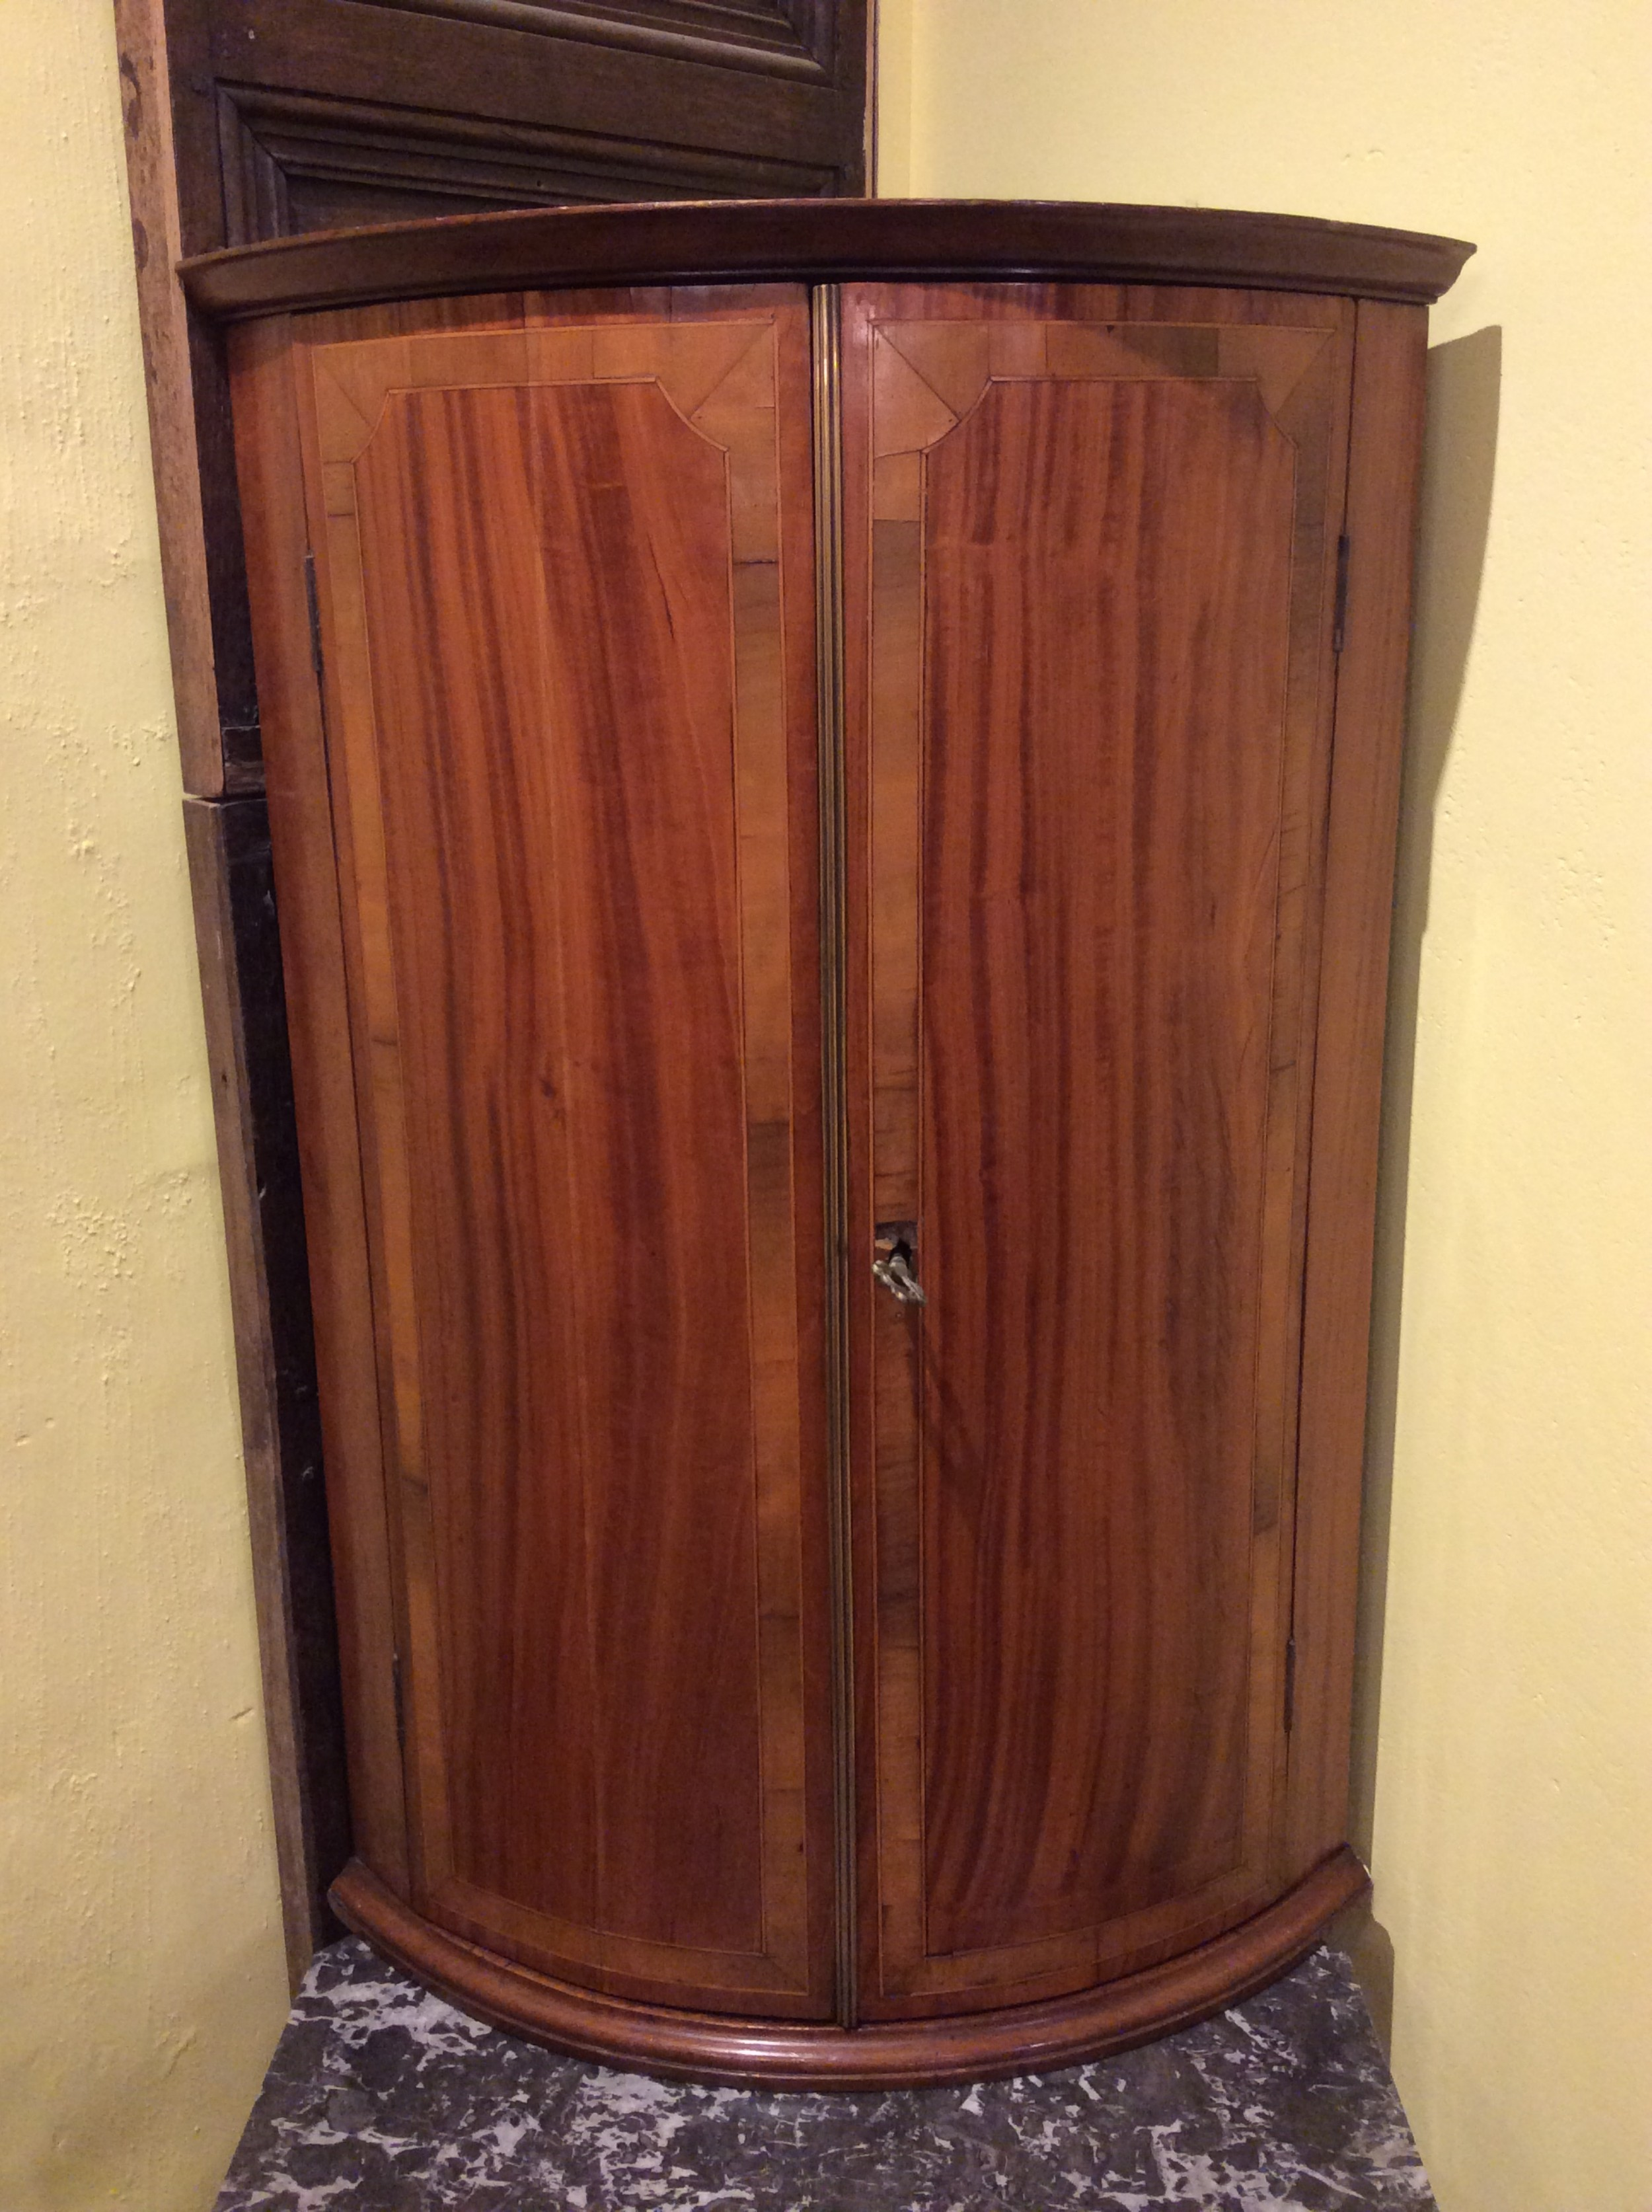 18thc satinwood harewood banded bow fronted corner cupboard